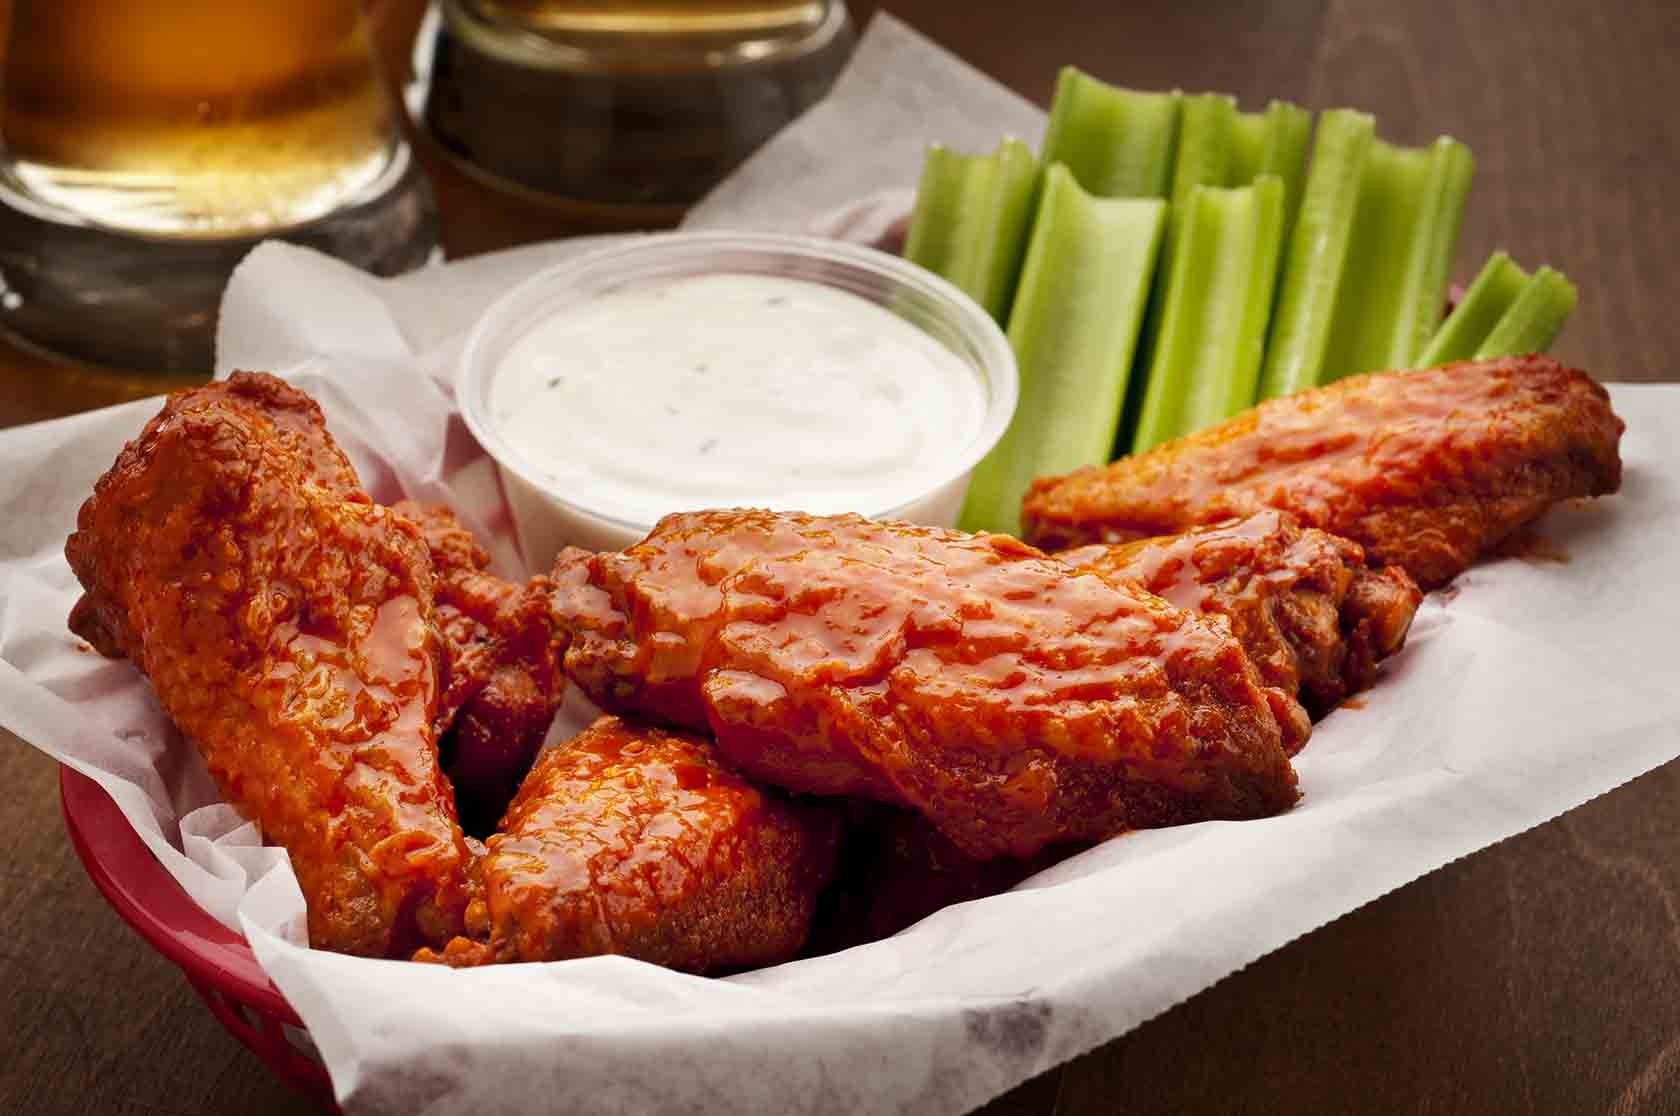 Buffalo wings and celery sticks